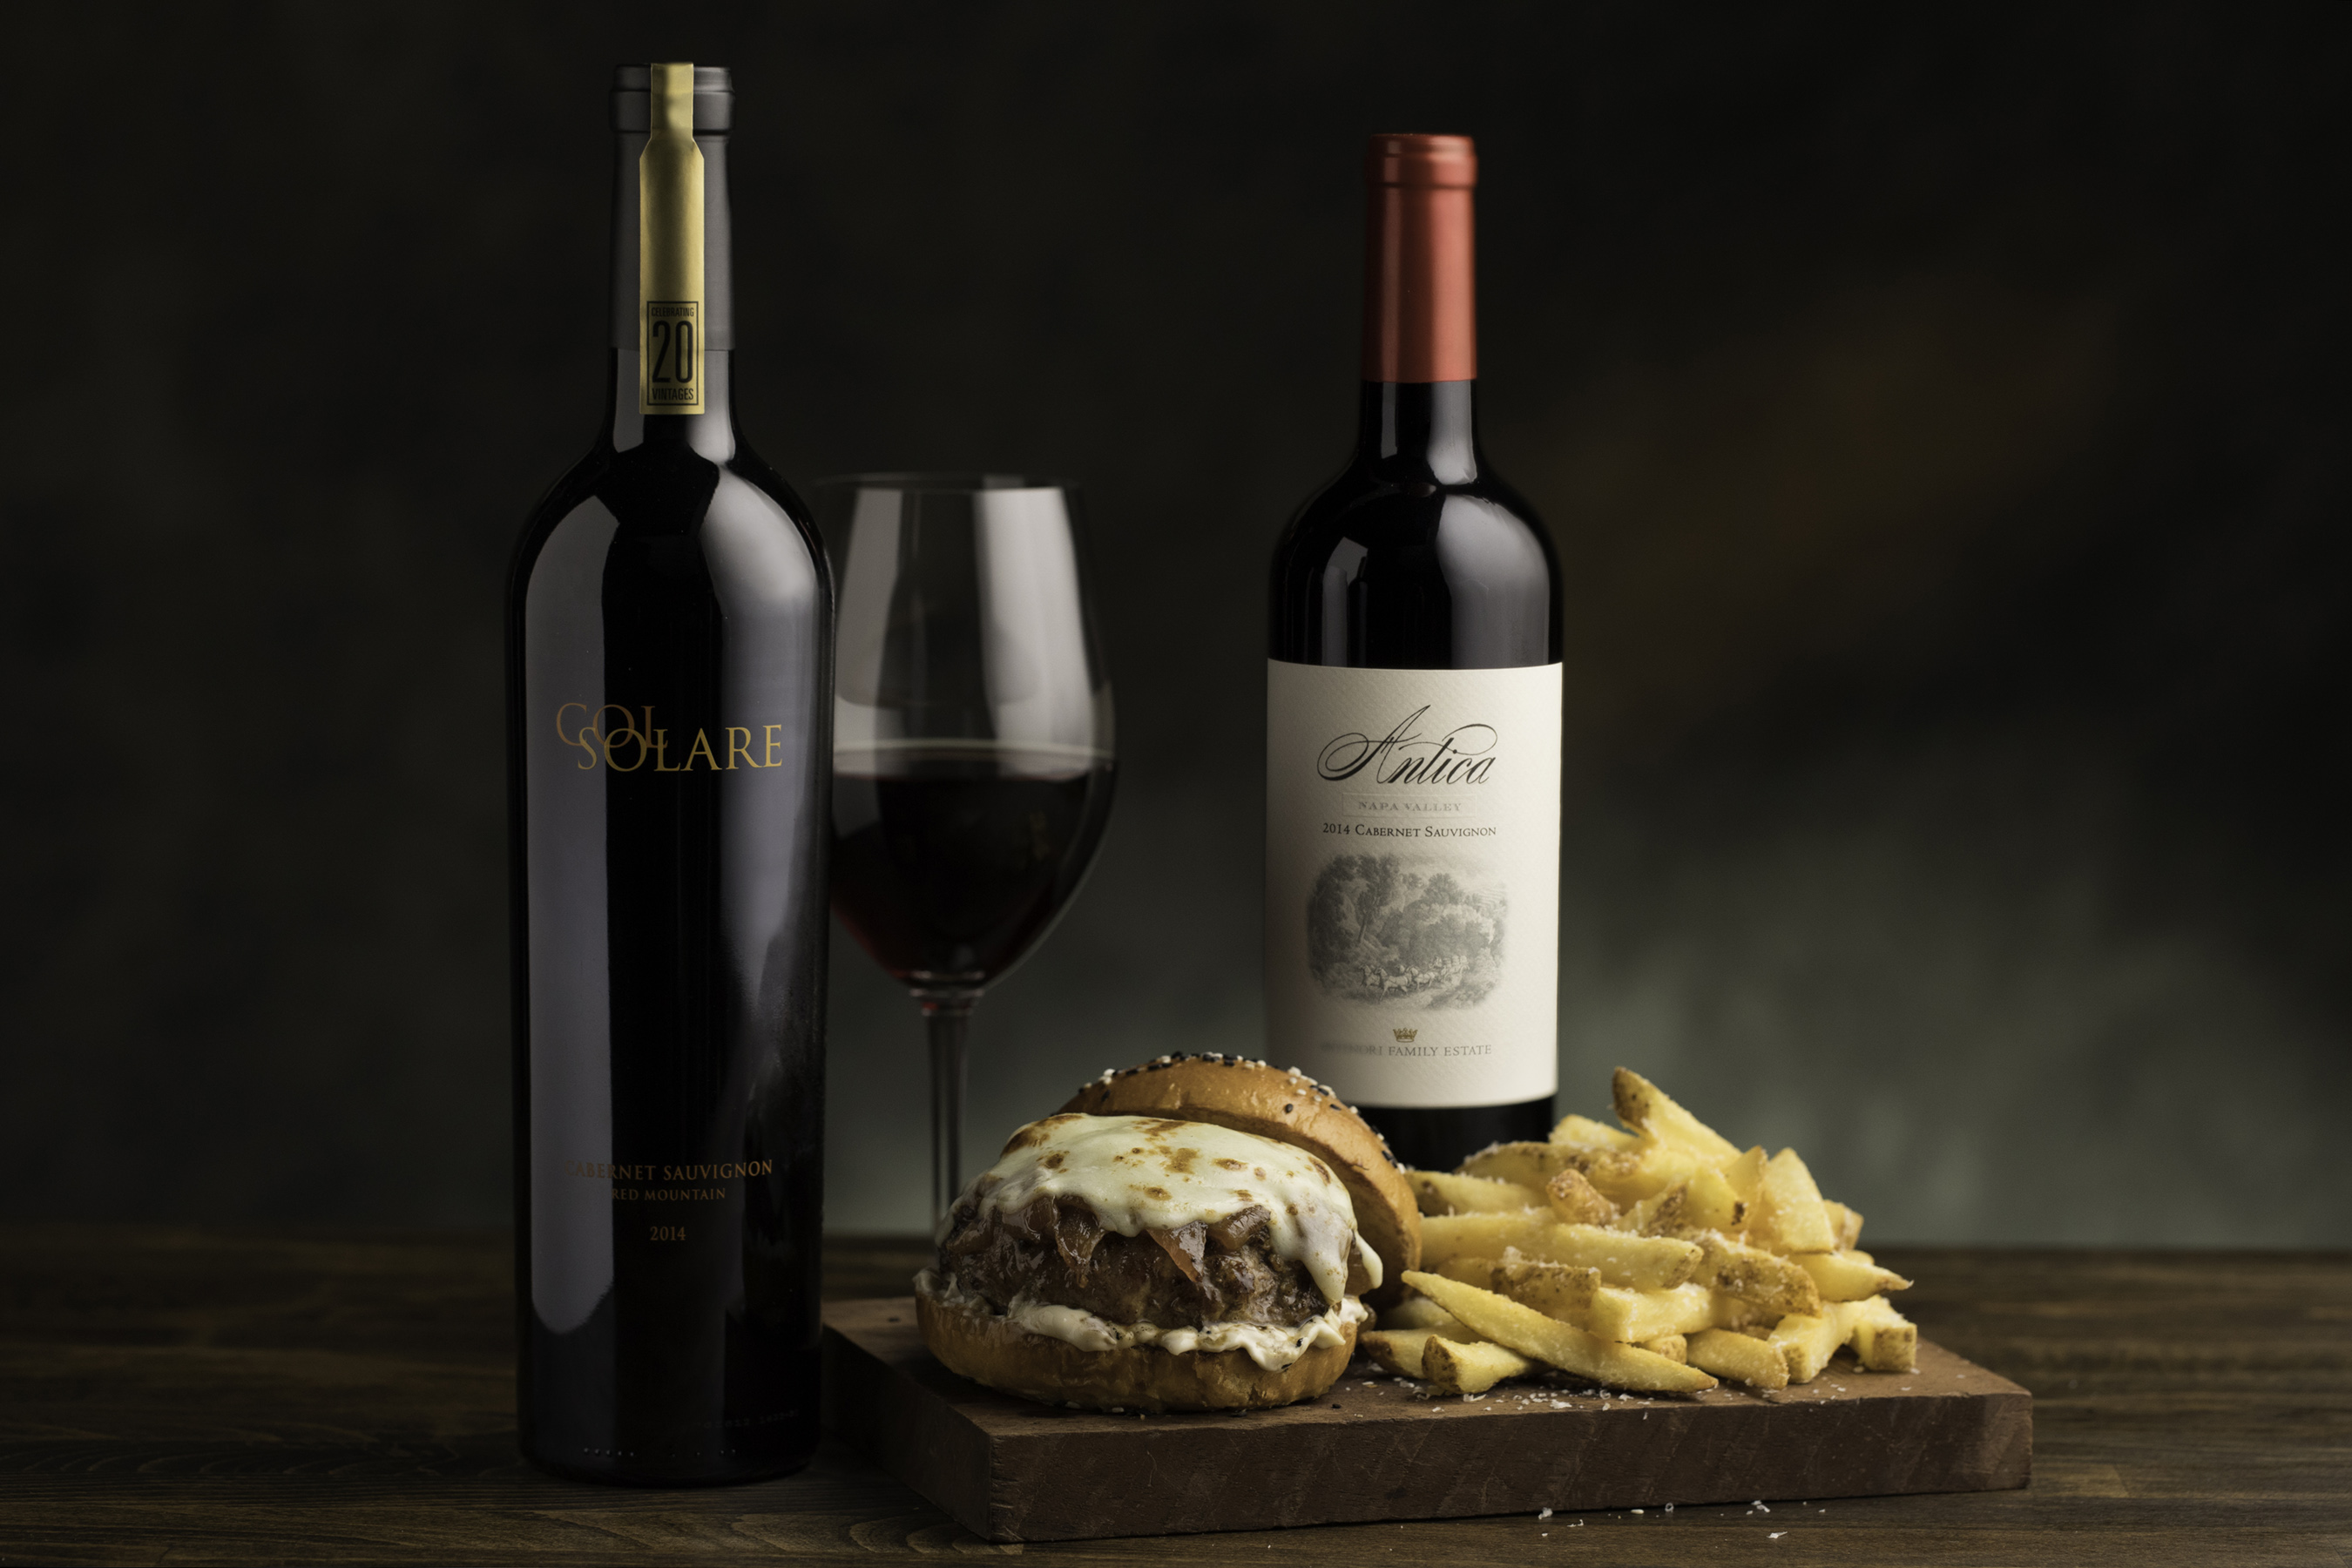 Pair the limited production Antinori Col Solare with the Caramelized Onion Wagyu Burger